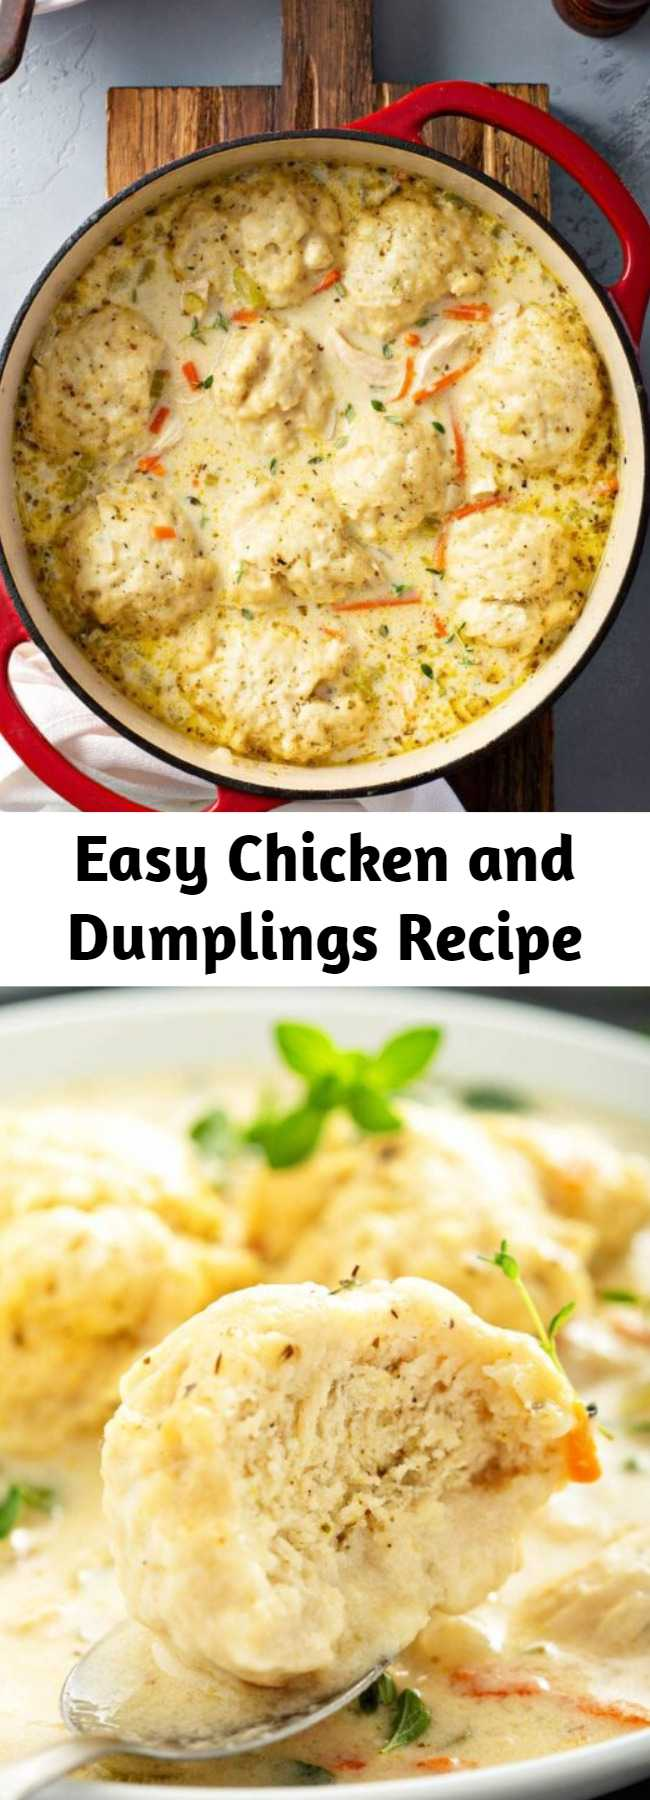 Easy Chicken and Dumplings Recipe - This easy recipe for my family's favorite creamy Homemade Chicken and Dumplings is loaded with big fluffy dumplings that are made from scratch in just minutes! #ChickenAndDumplings #Dumplings #ComfortFood #Chicken #ChickenSoup #Soup #Dumplings #SouthernFood